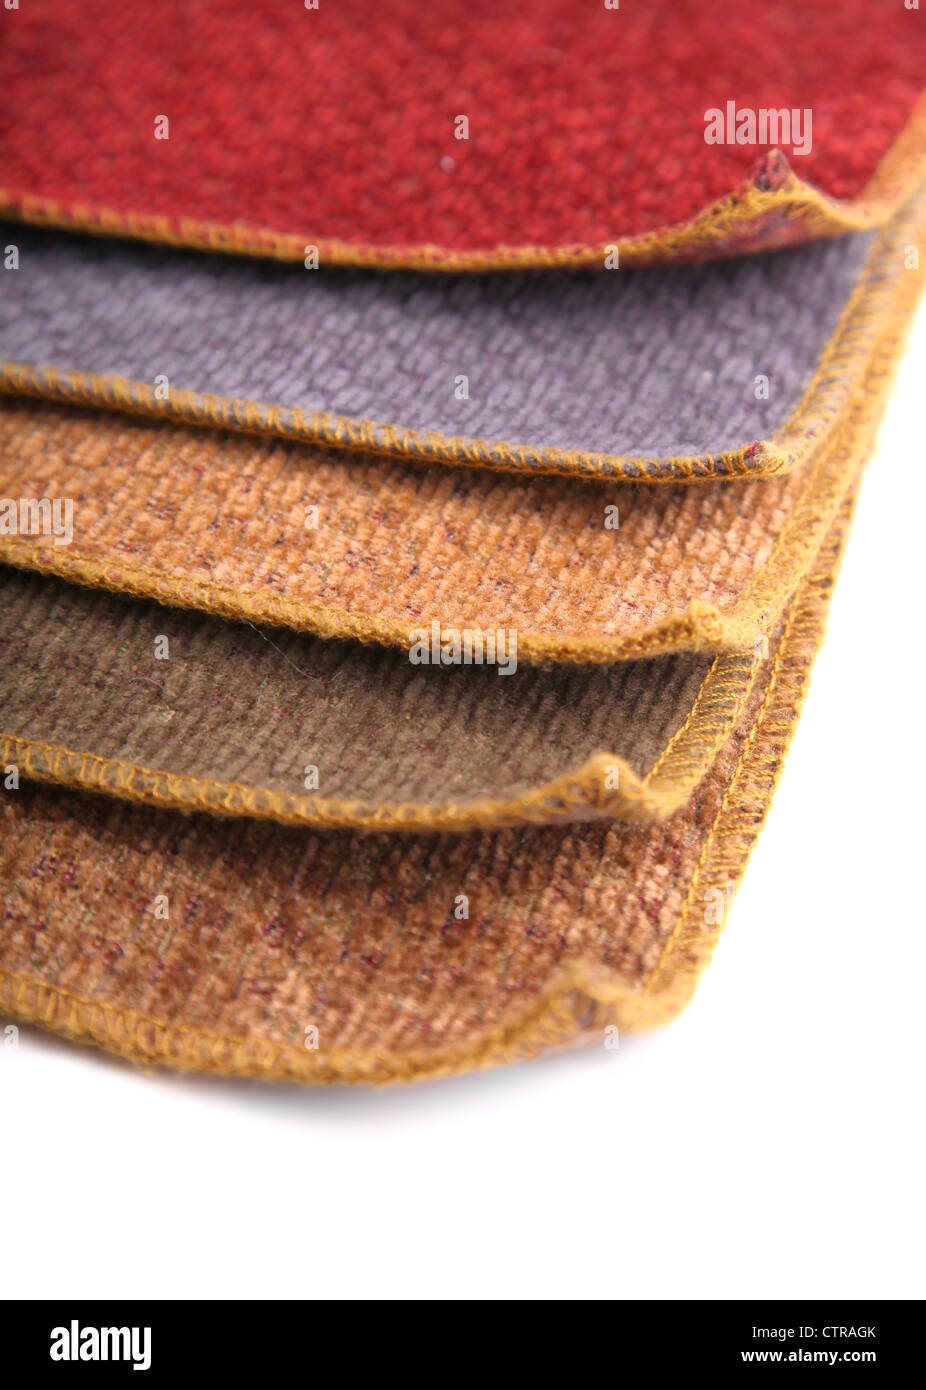 A book of upholstery fabric samples. - Stock Image